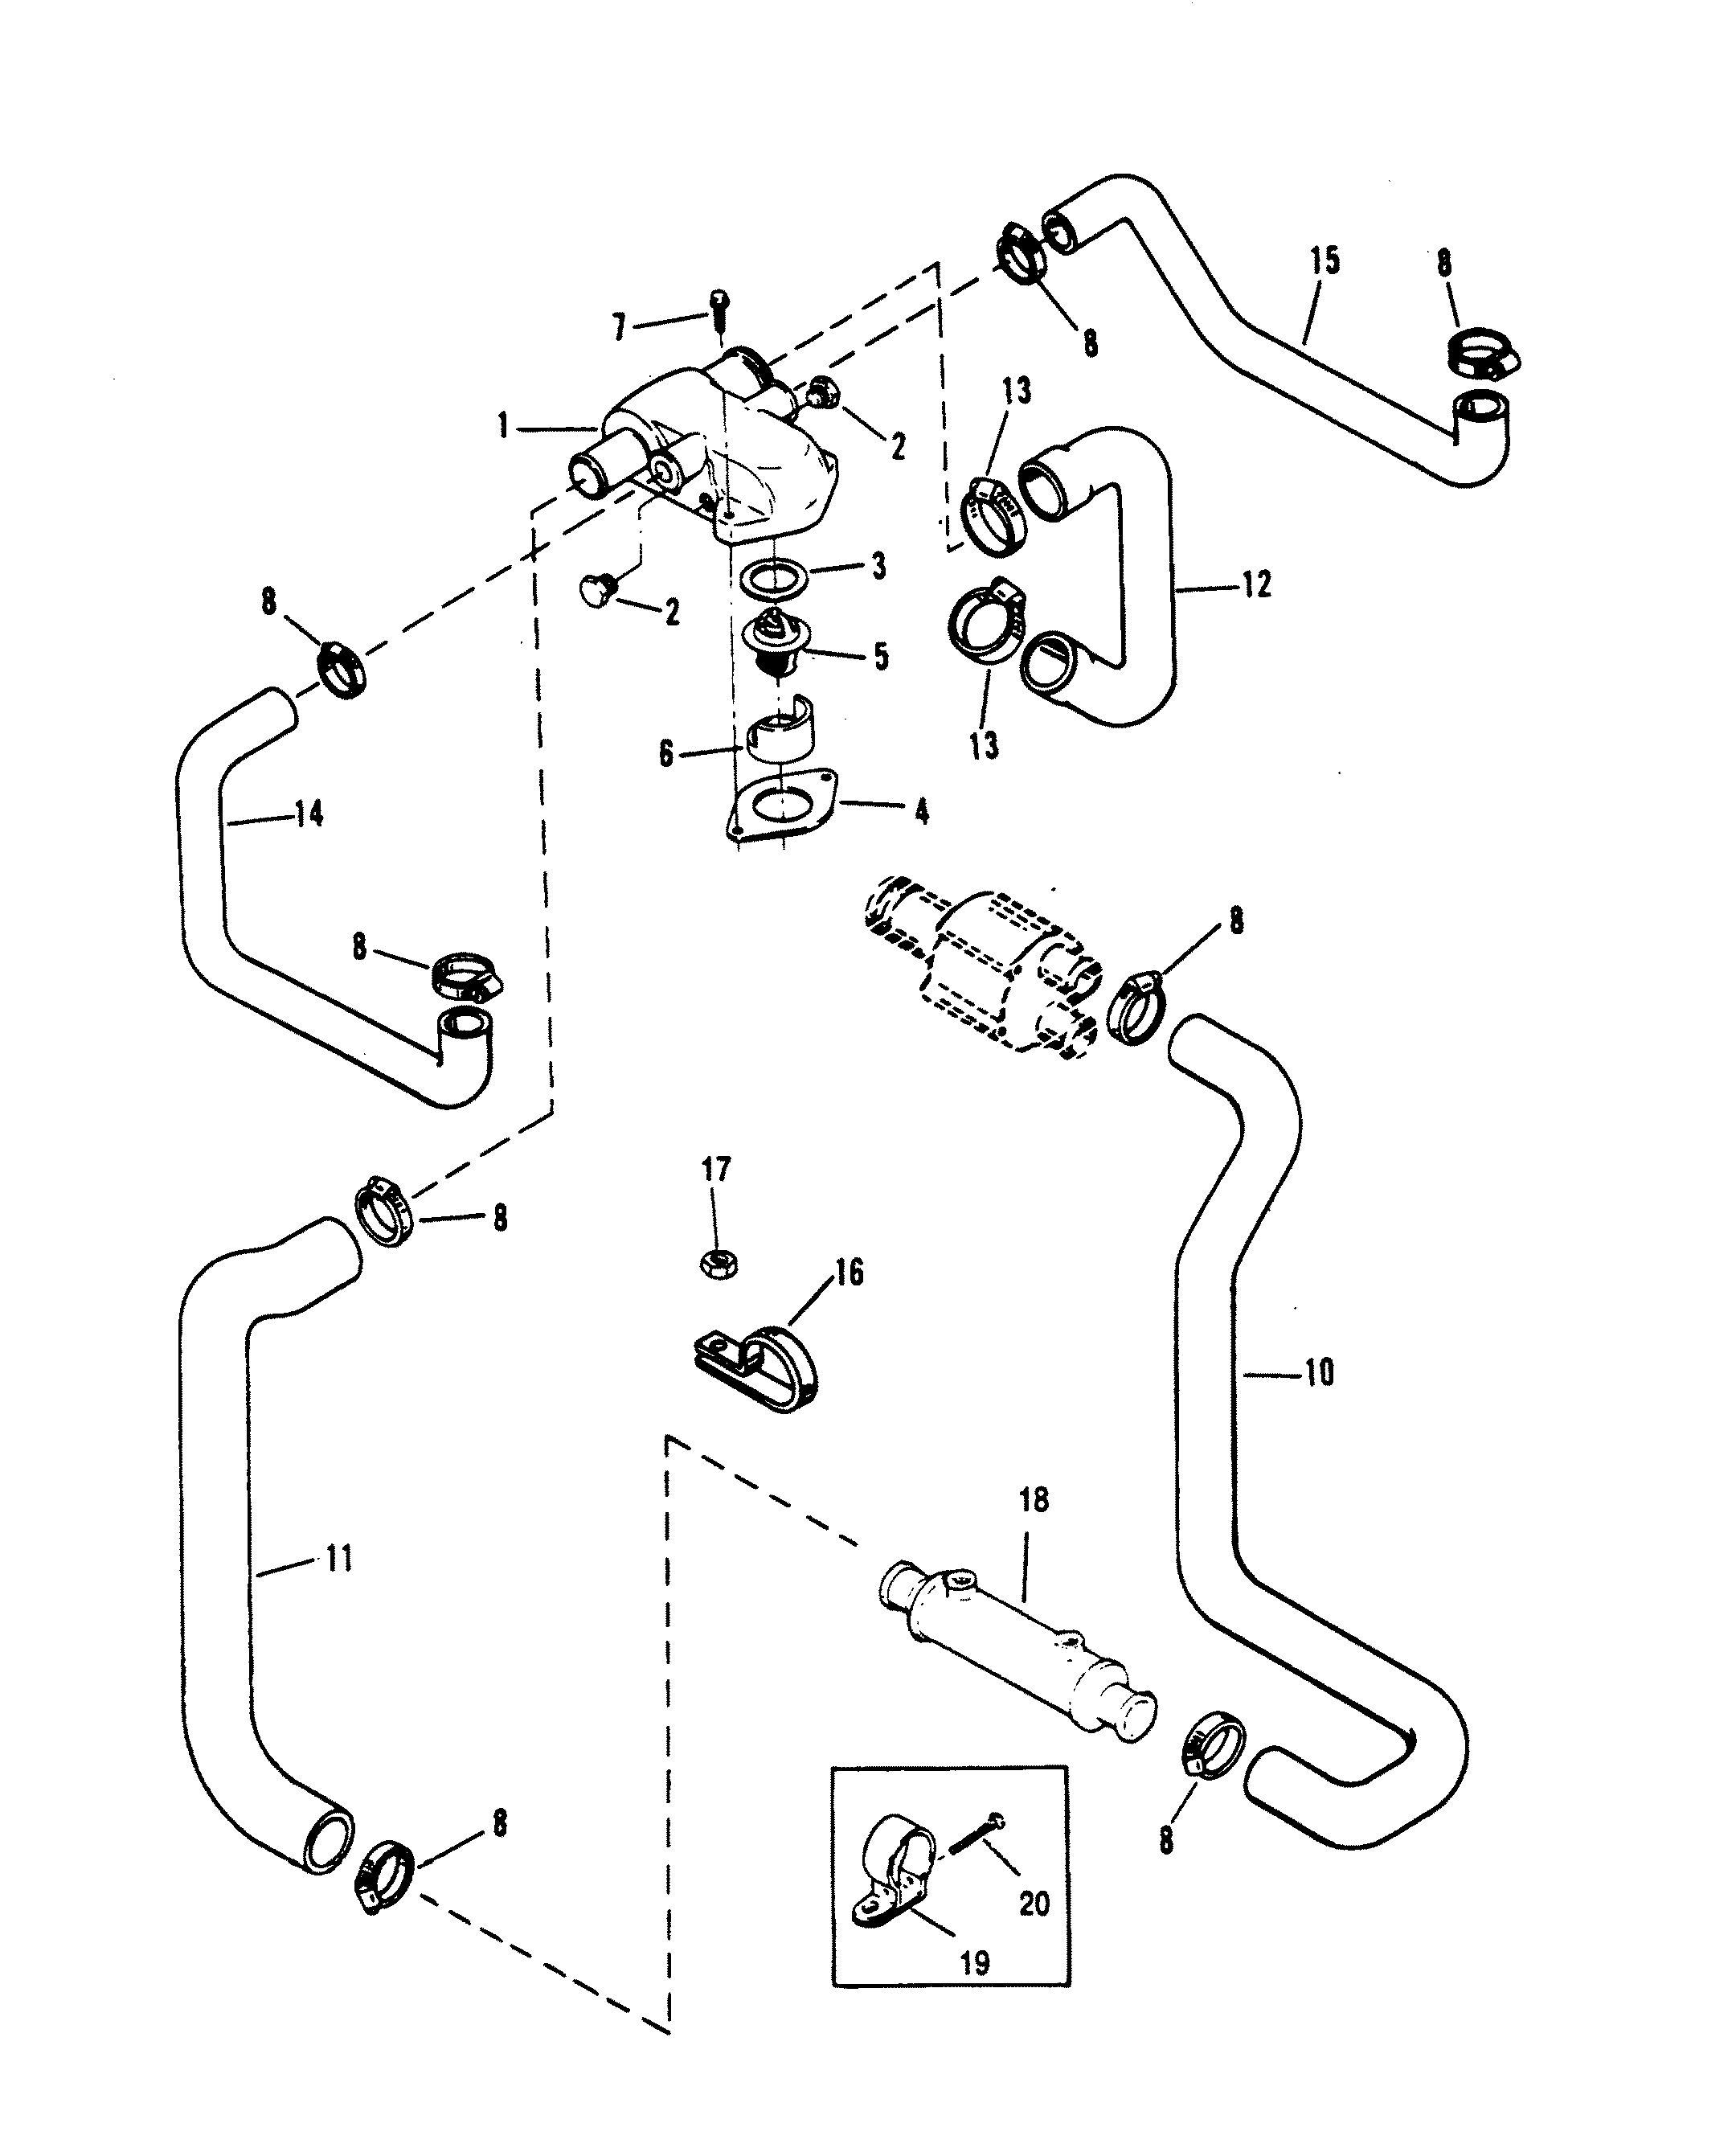 Gmc Topkick Steering Column Diagram as well Chevrolet Venture Van Starting System Wiring Diagram further 1970 1981 Camaro Trans Am Body Hull Weather Seal New likewise 67 firebird2 additionally Large. on gm replacement fuel tanks